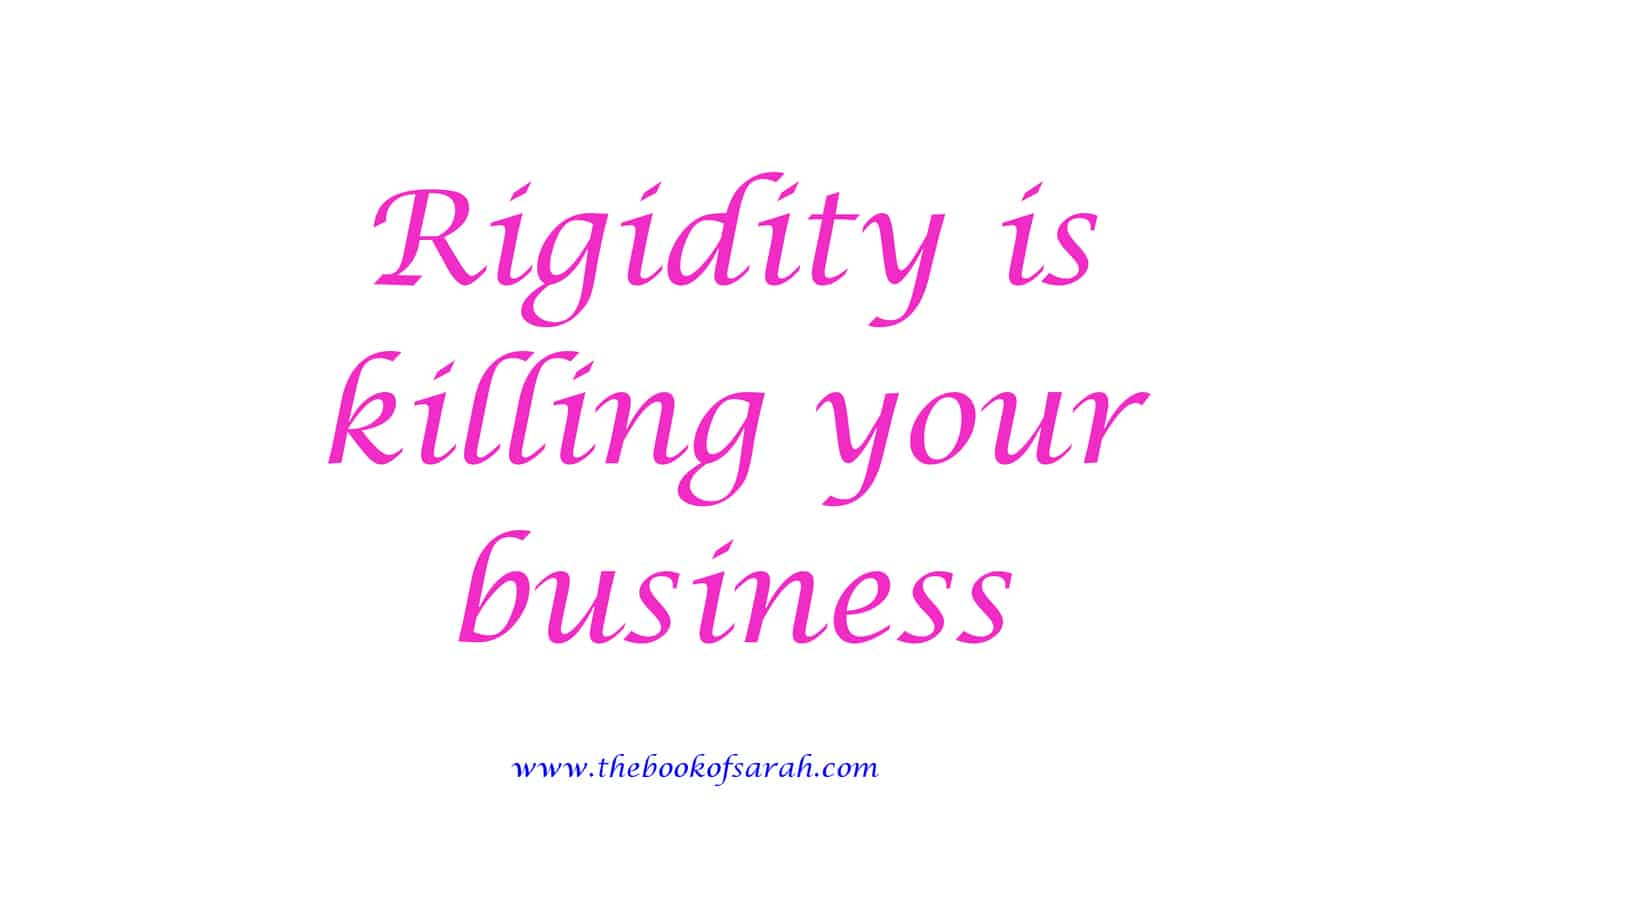 Rigidity is killing your business